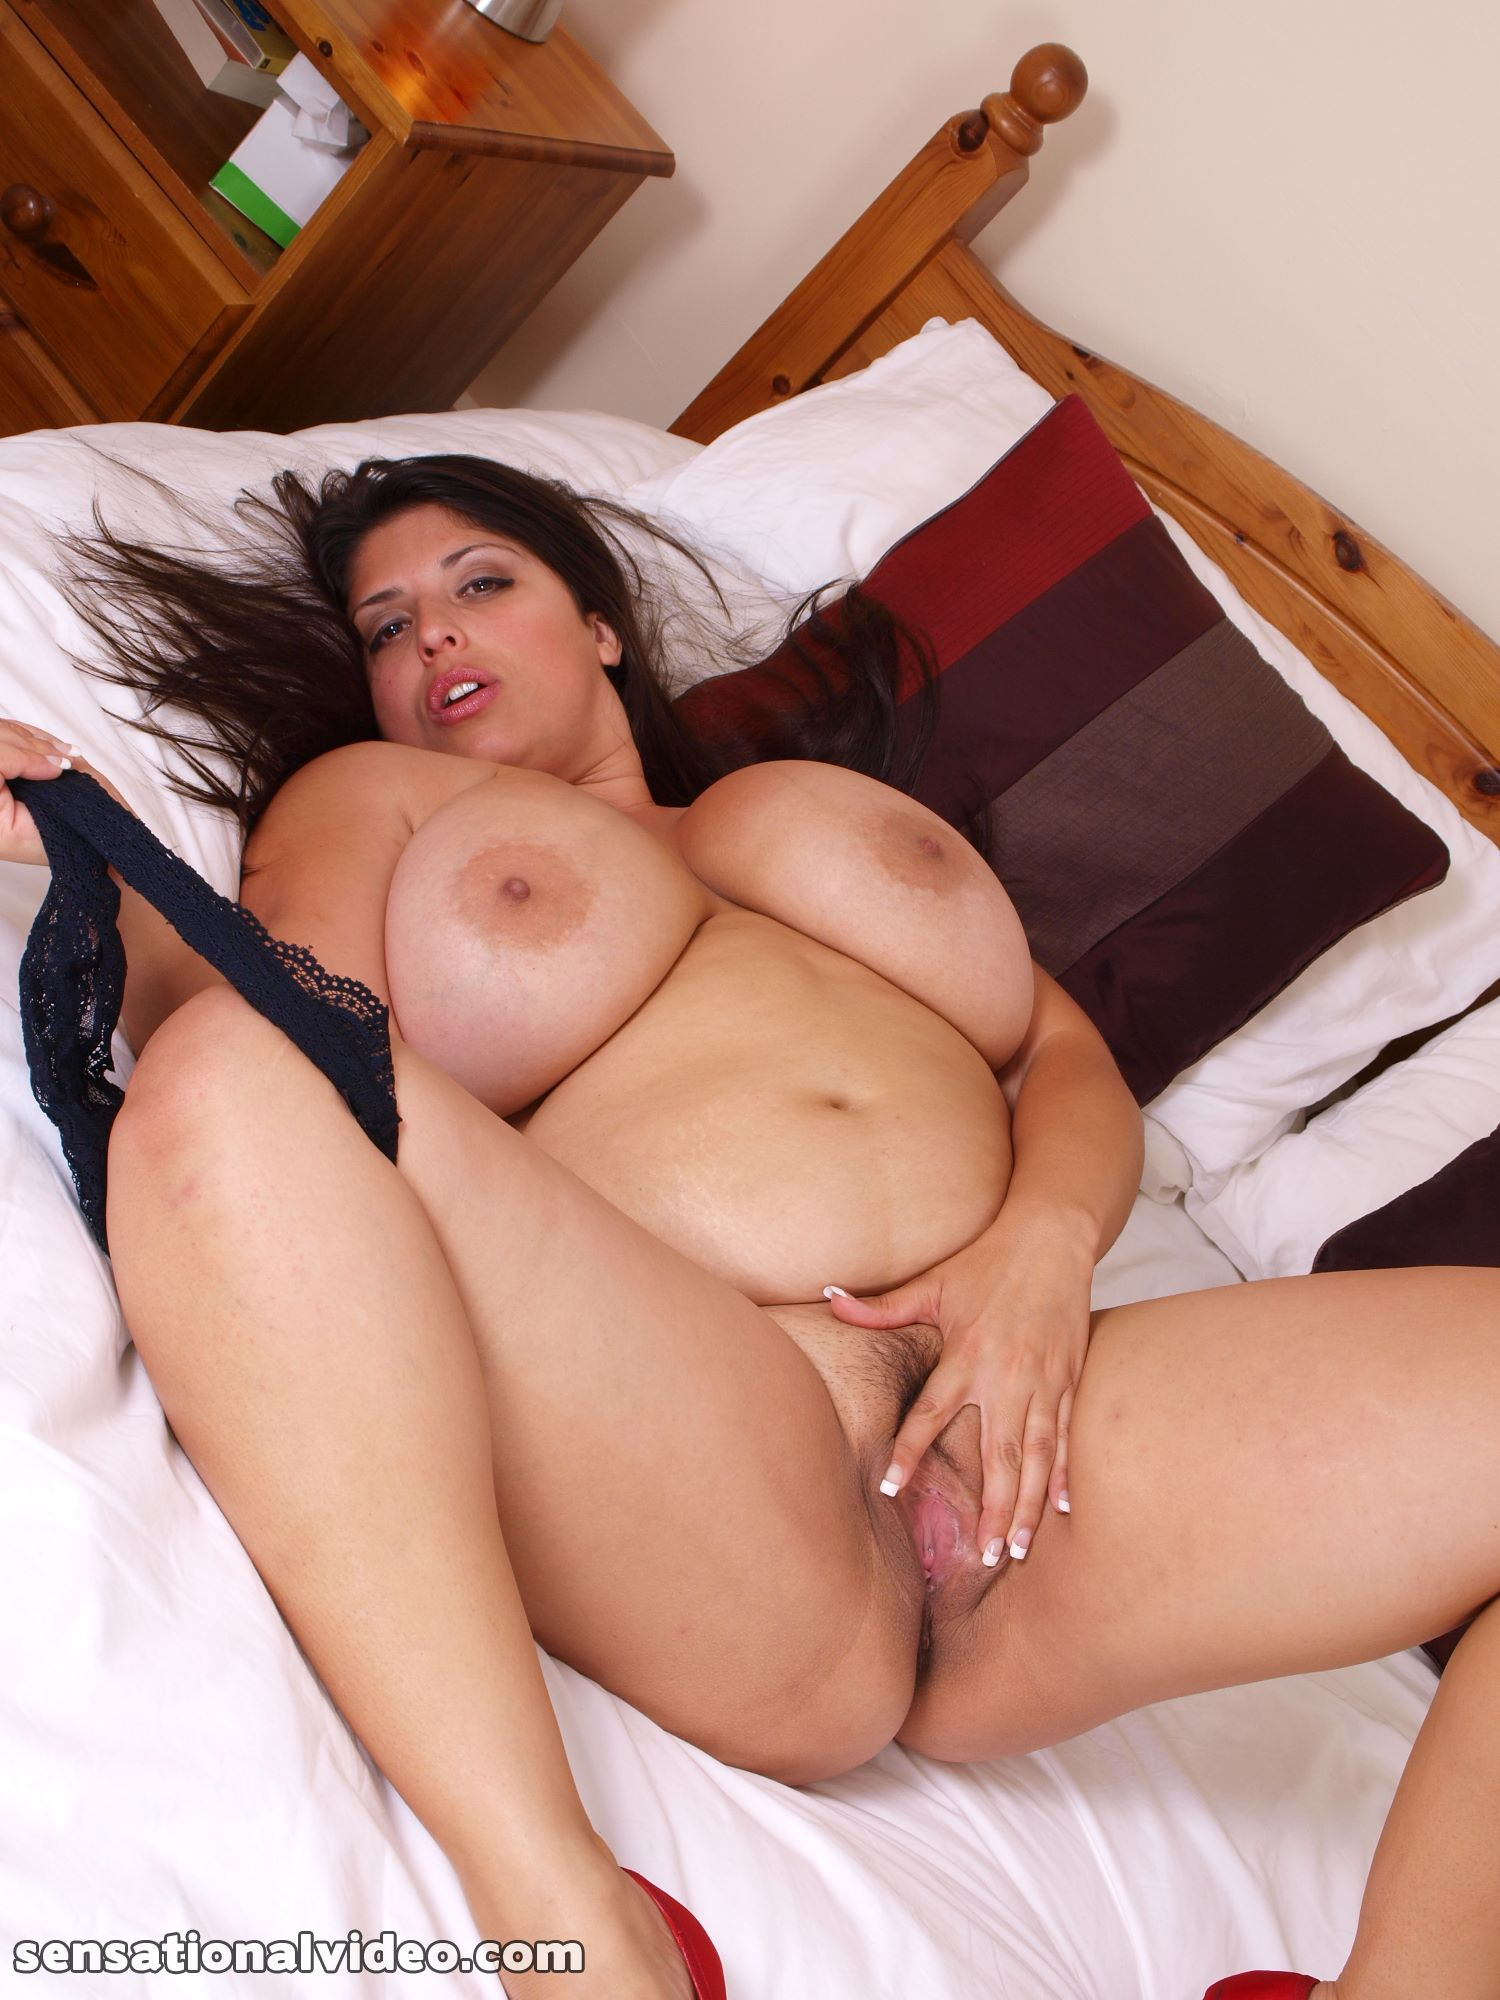 Kerry marie having sex